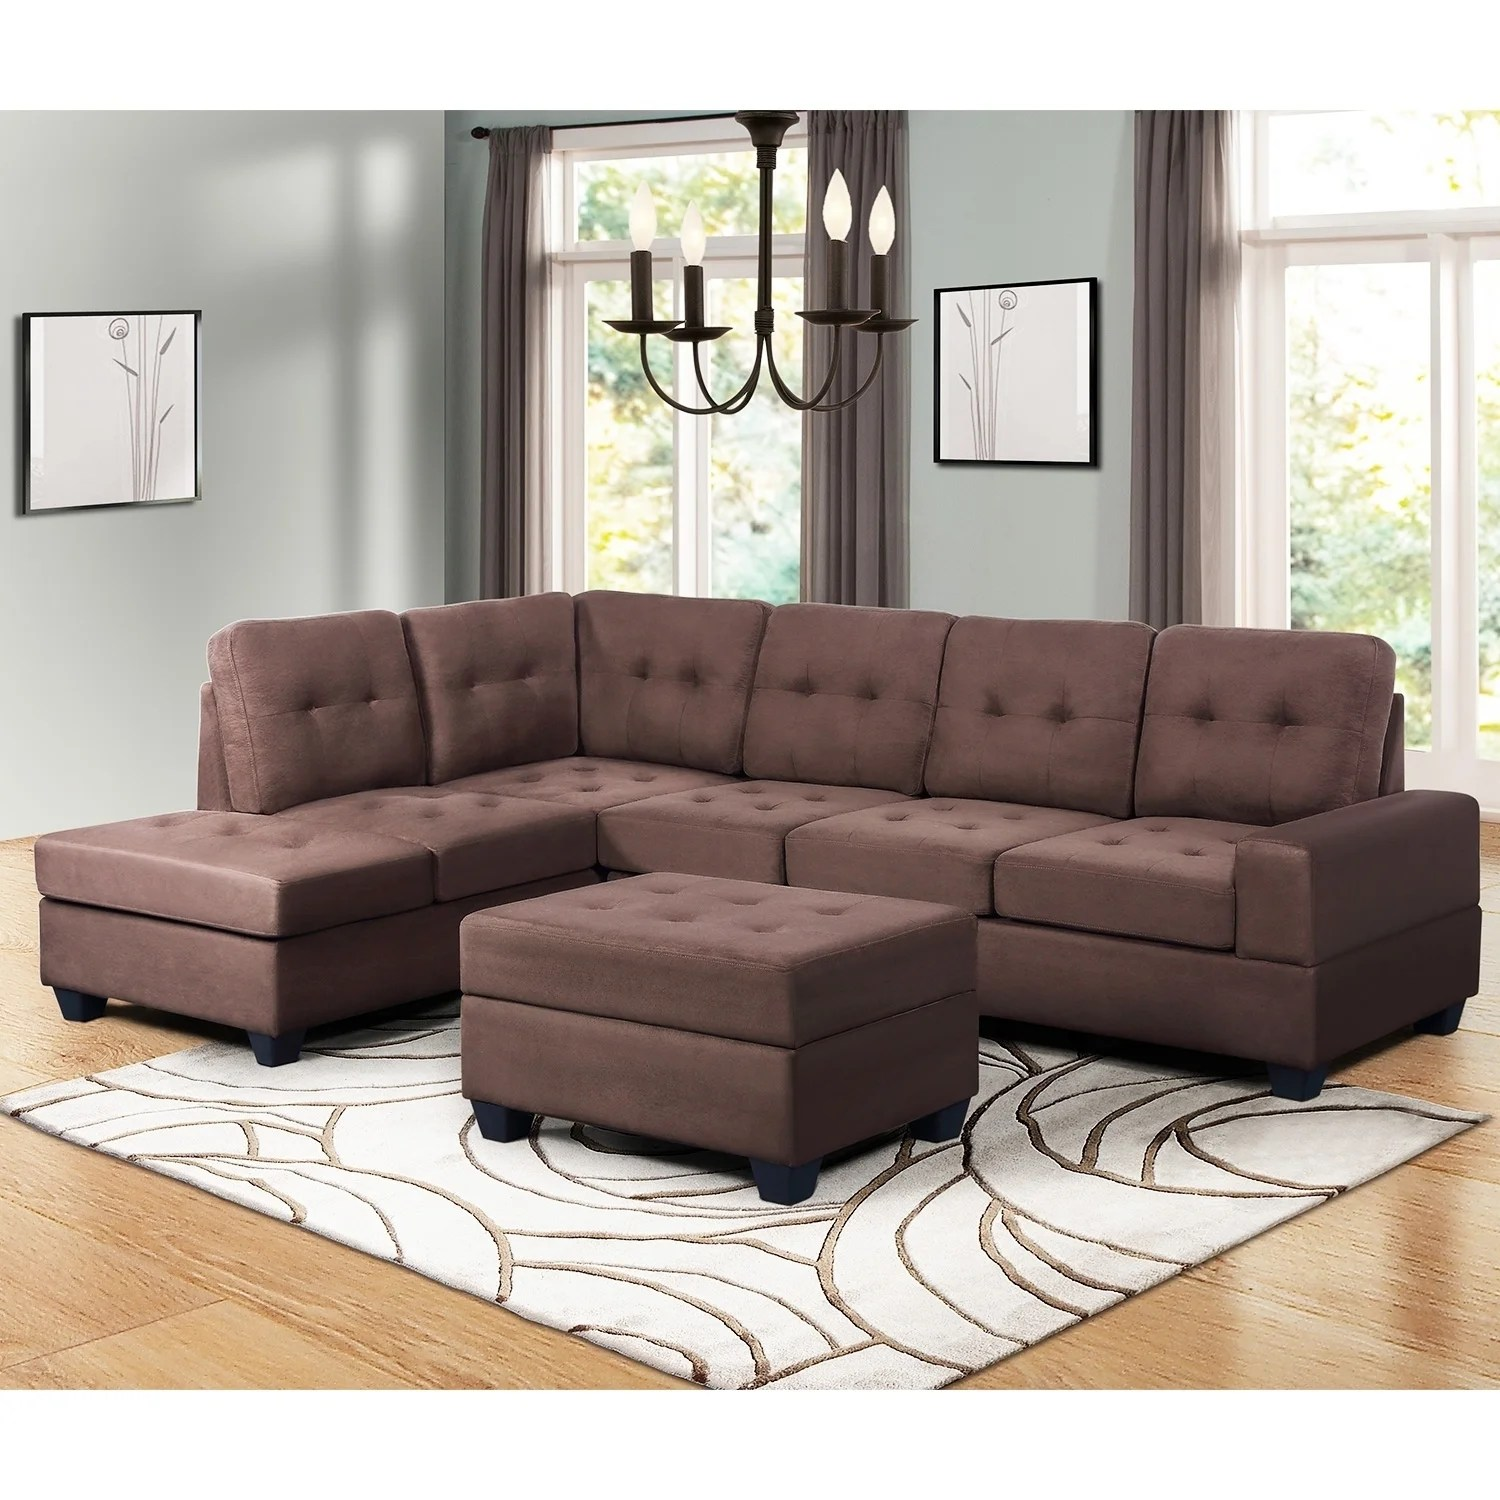 Microfiber Sectional Sofa Buy Grey Microfiber Sectional Sofas Online At Overstock Our